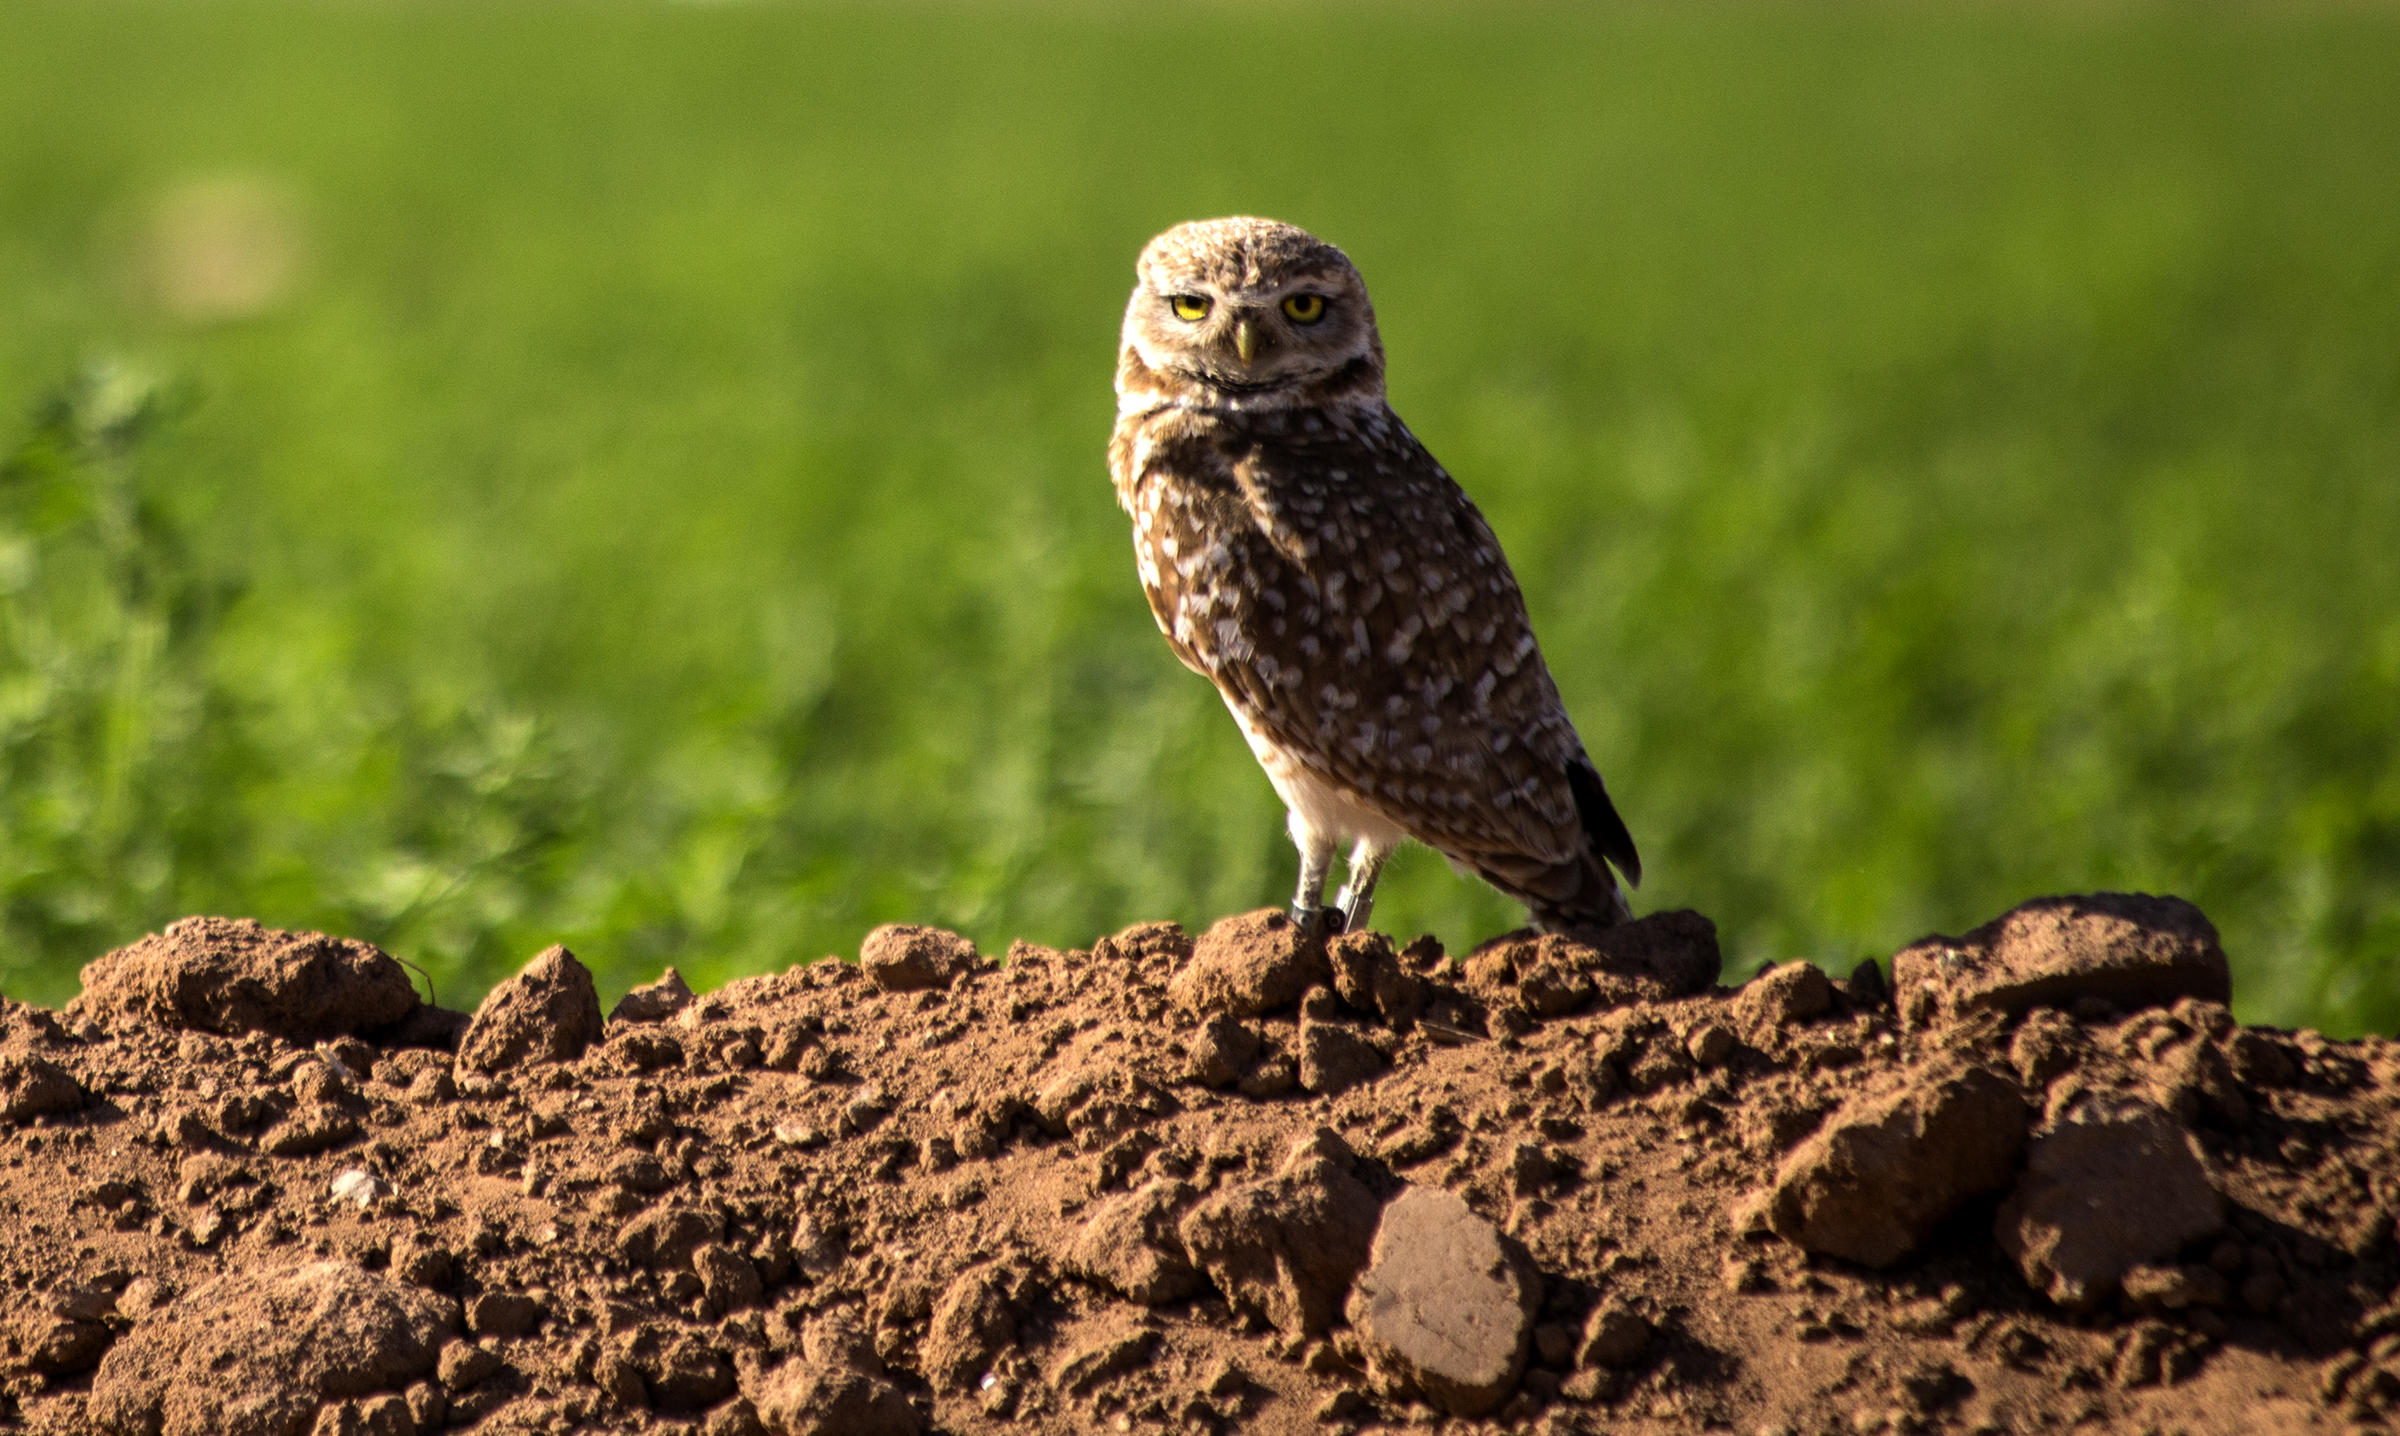 A Burrowing Owl in a field in Phoenix.